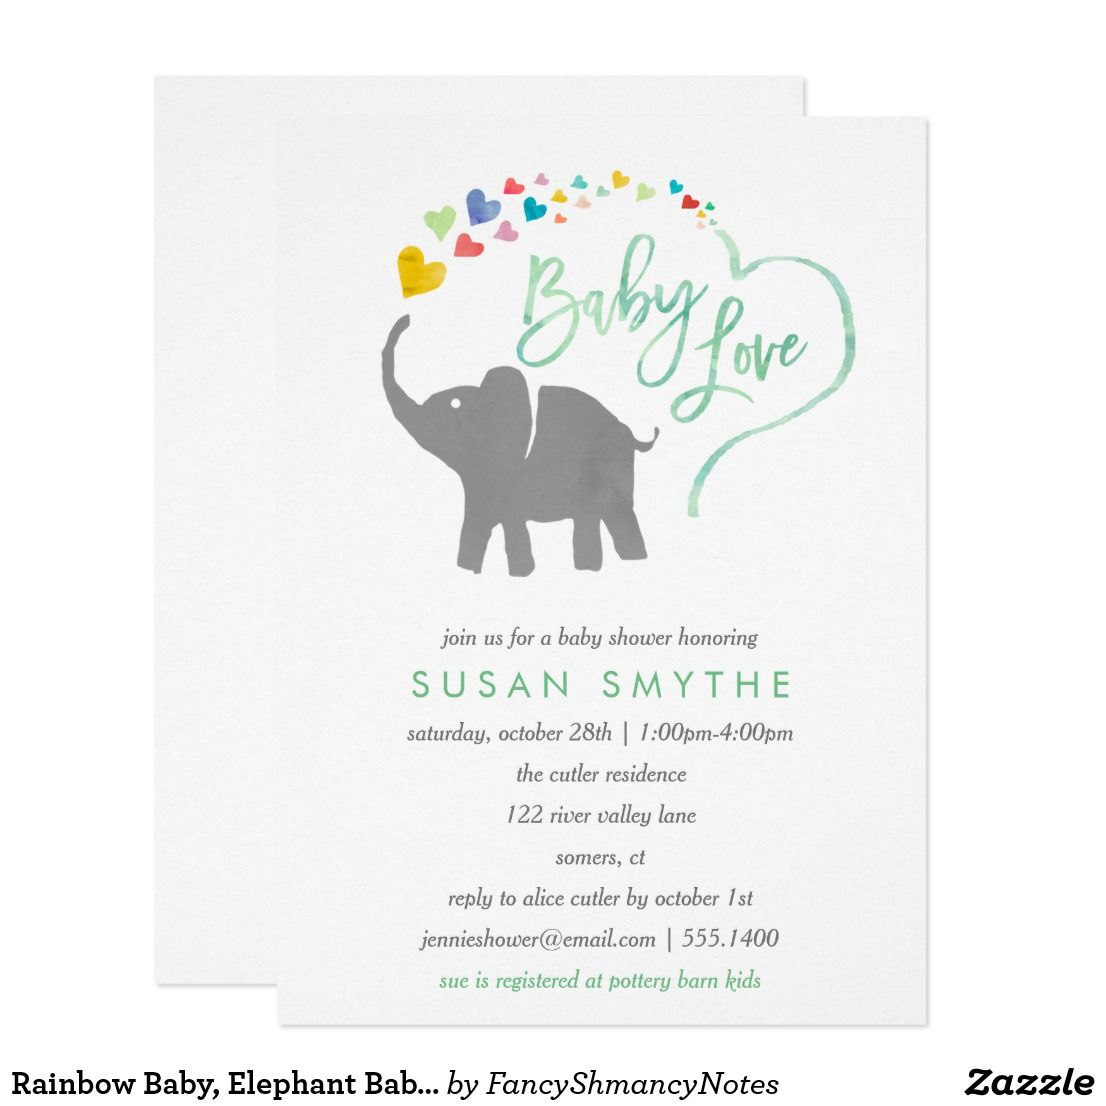 Rainbow Baby, Elephant Baby Shower Invitation | Rainbow baby ...